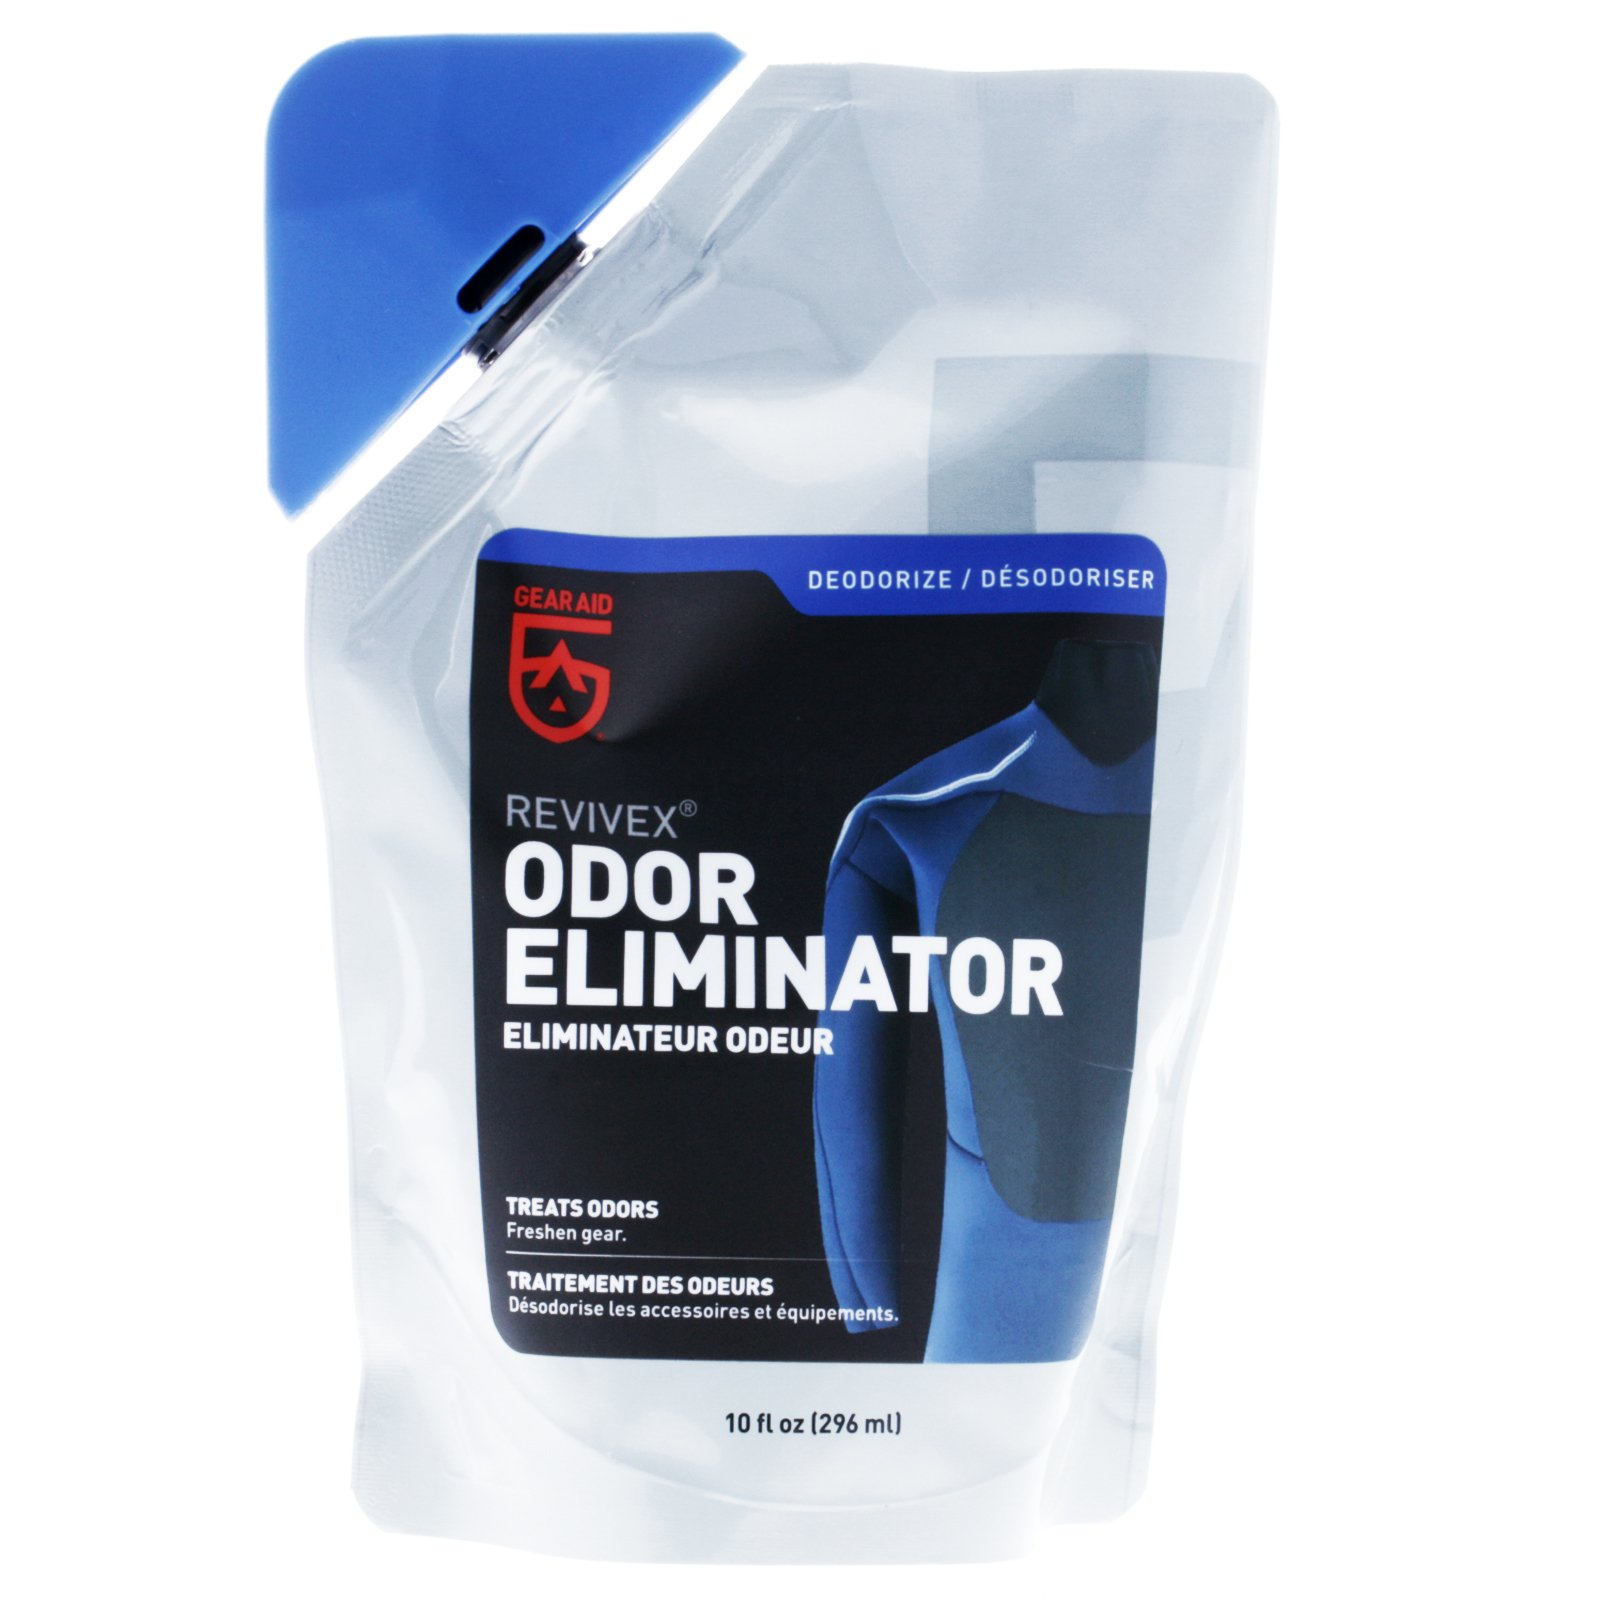 Odor Remover and Suit Cleaner Diving Equipment - 10 oz